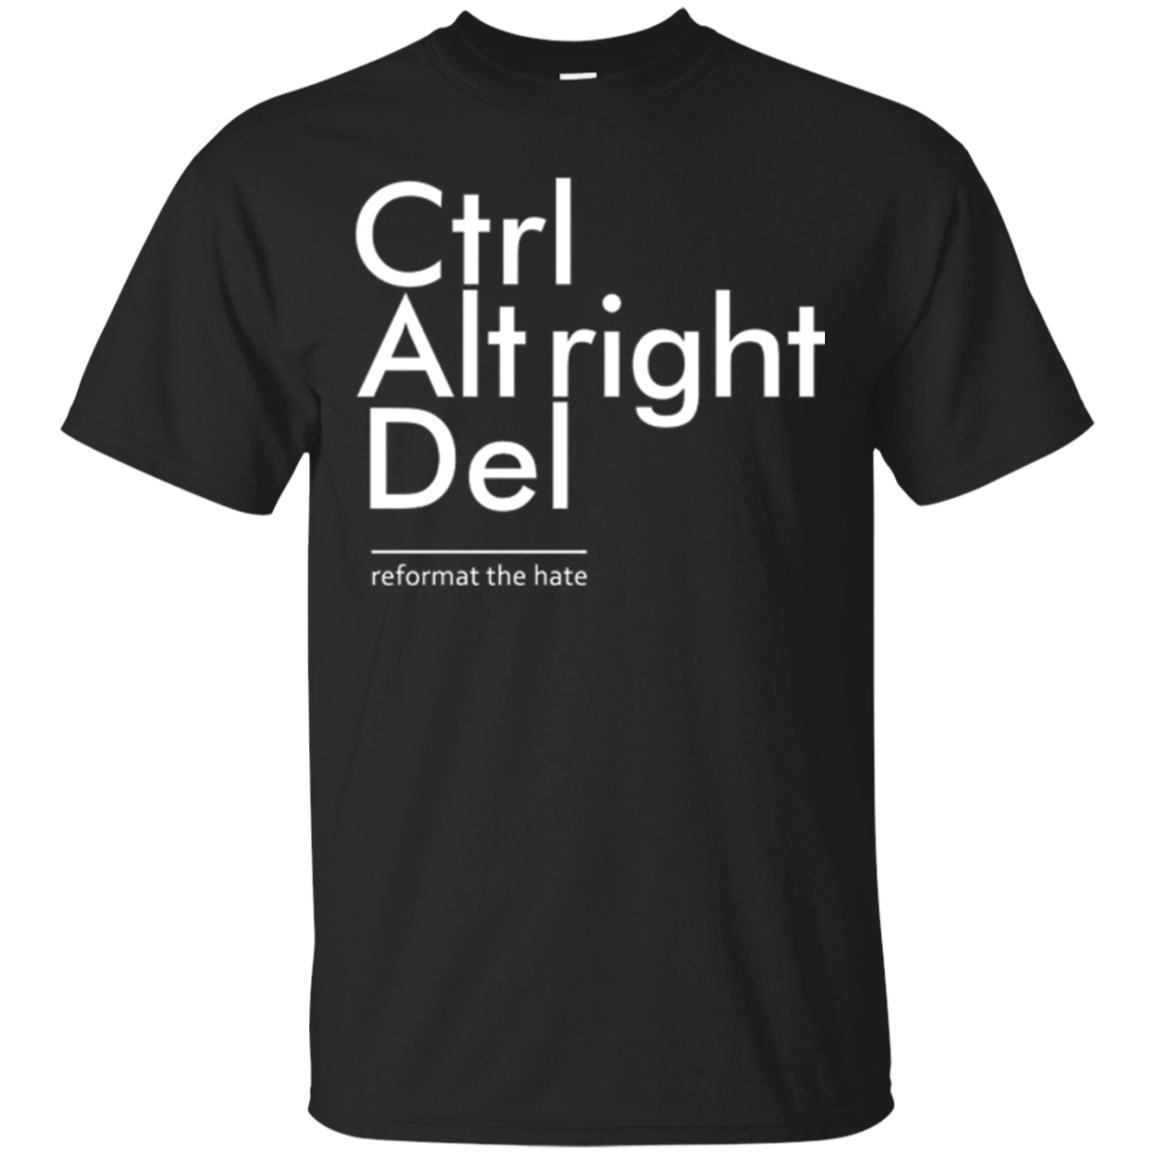 Reformat the Hate (Ctrl Alt Right Del): Equal Rights T-Shirt